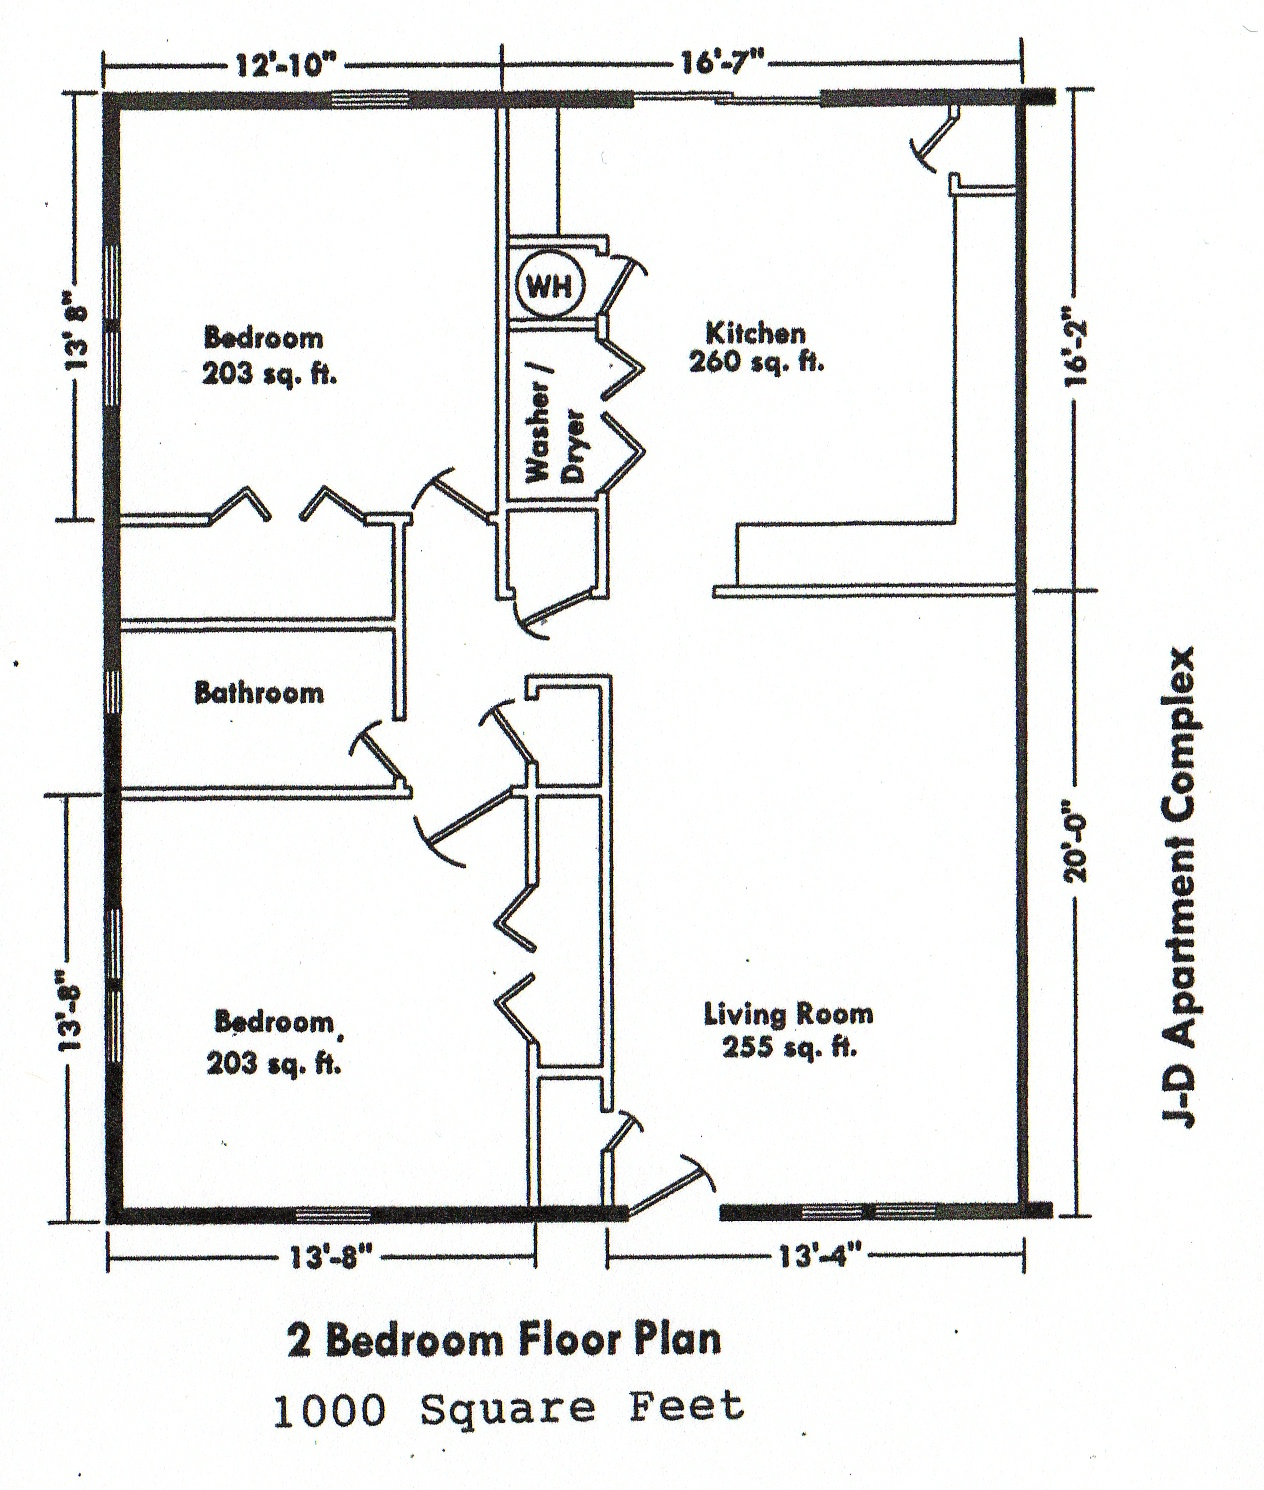 bedroom floor plans